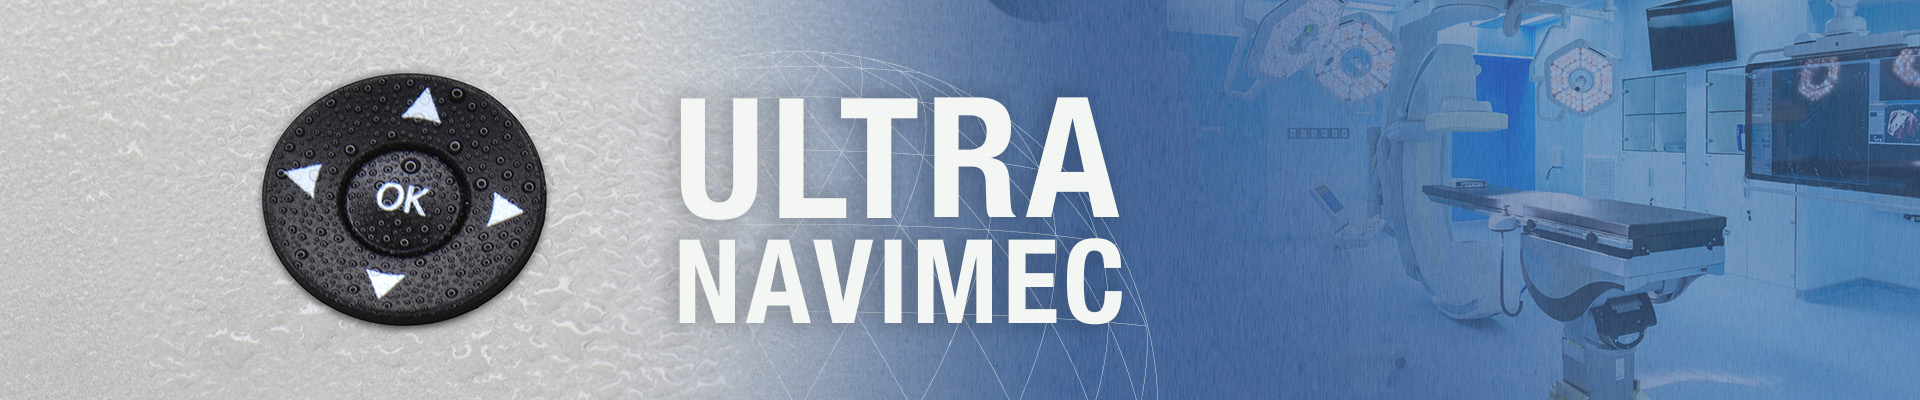 Ultranavimec